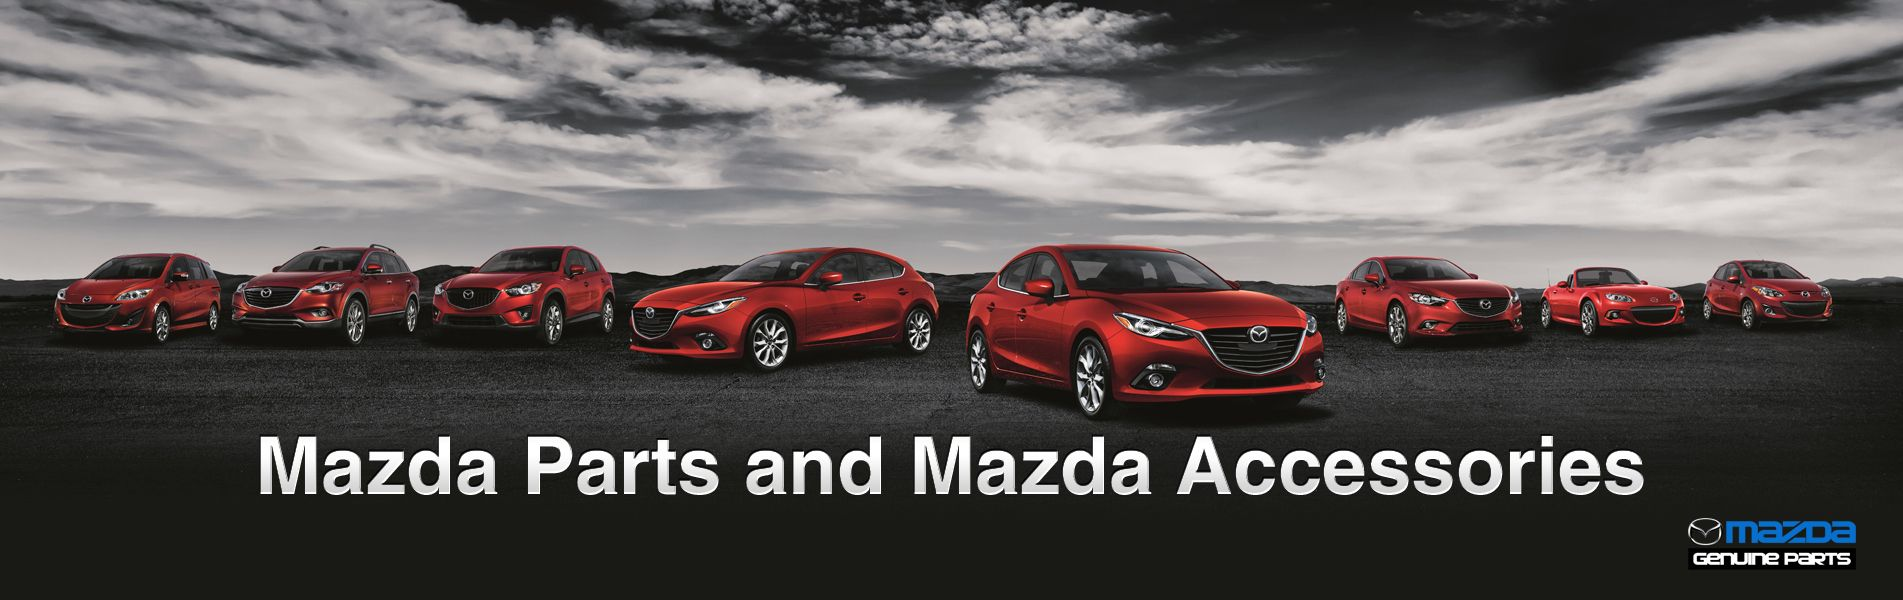 Shop Mazda Parts and Accessories